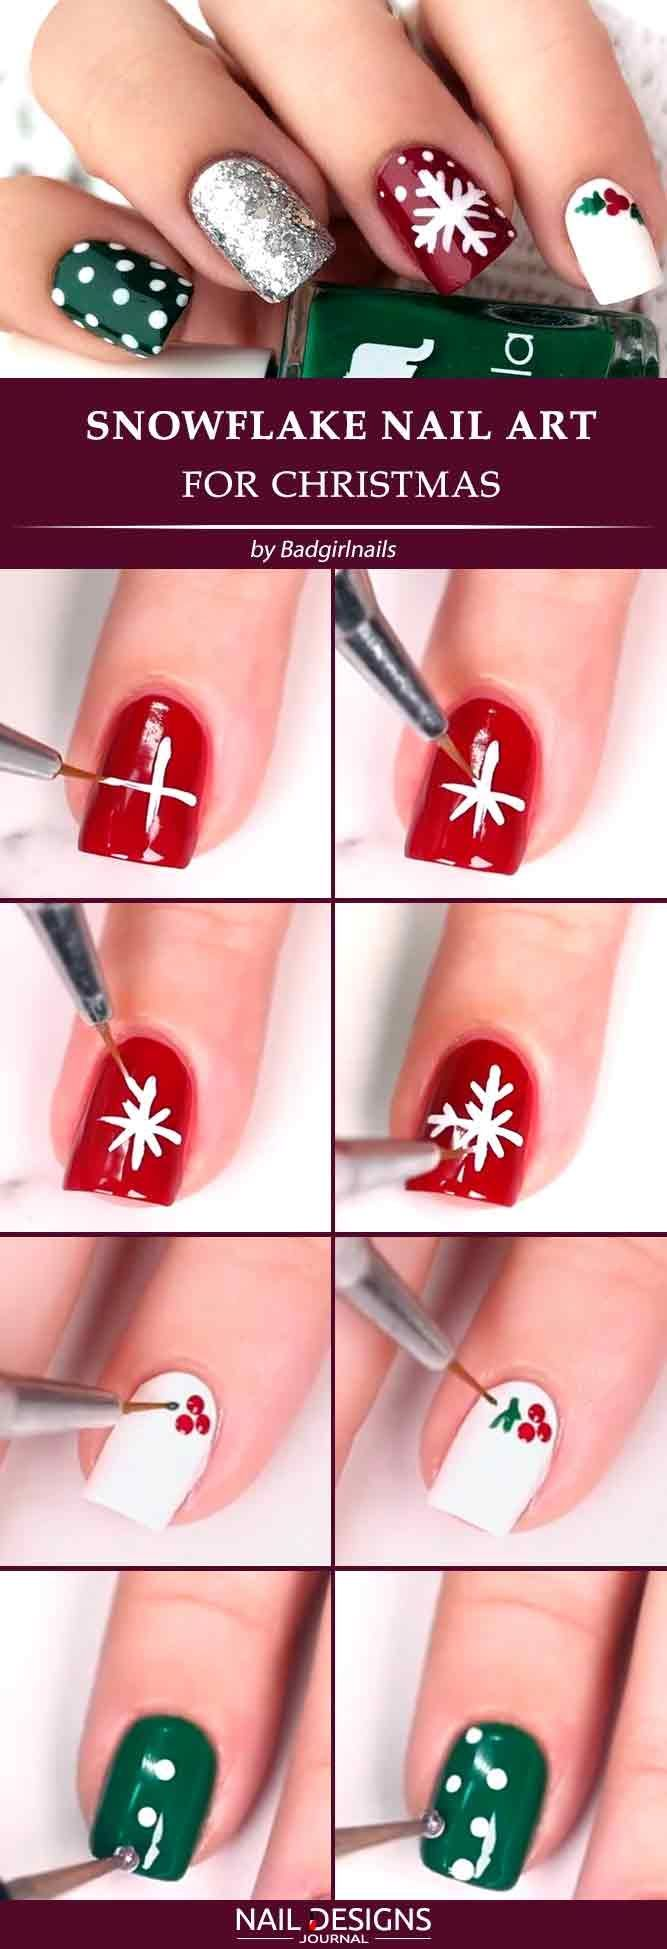 Best Tutorials on Snowflake Nails Designs #neiged#39;hiver